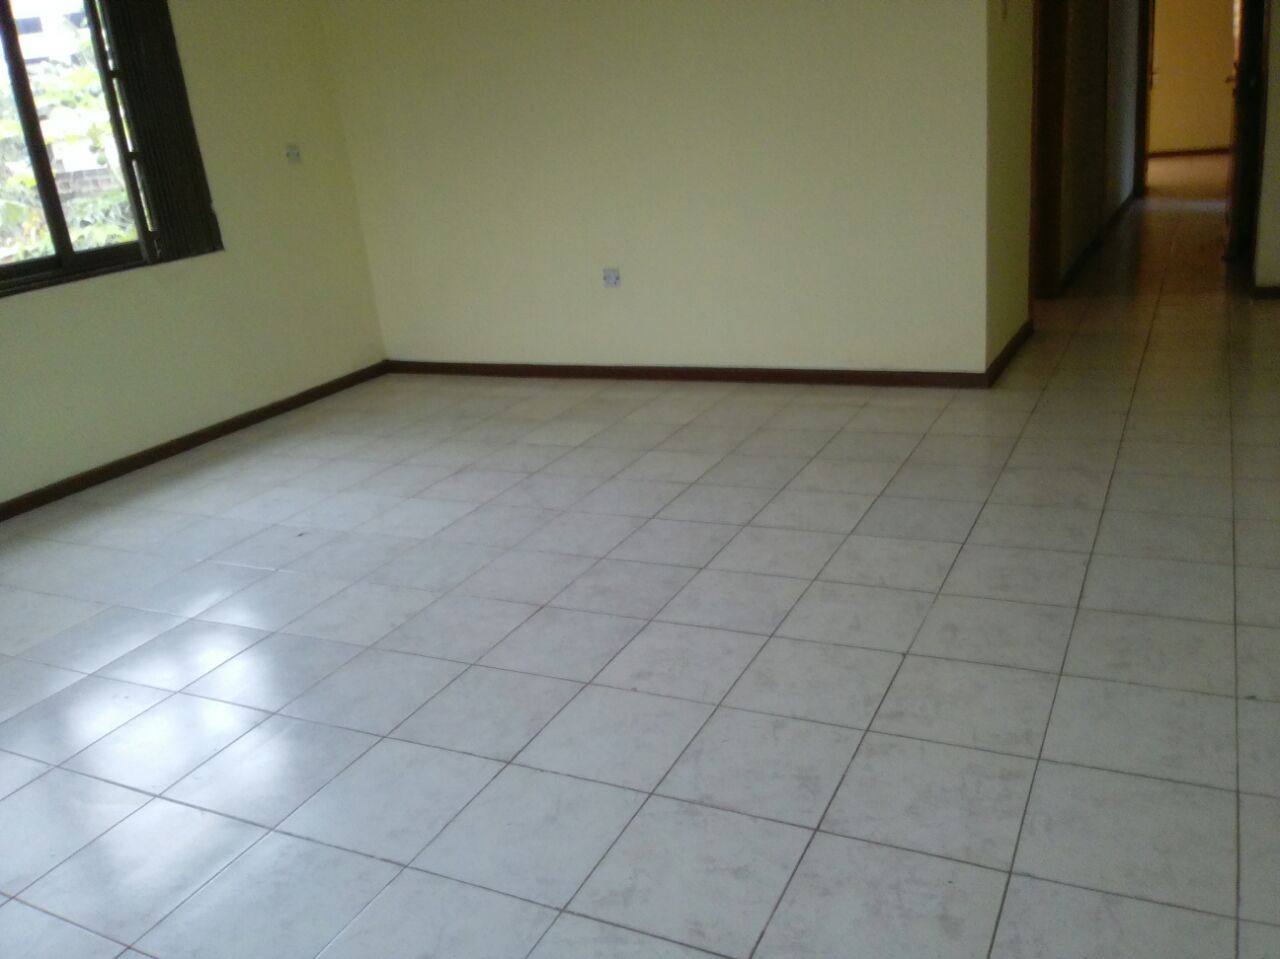 6 Bedrooms House For Sale in Accra Ghana